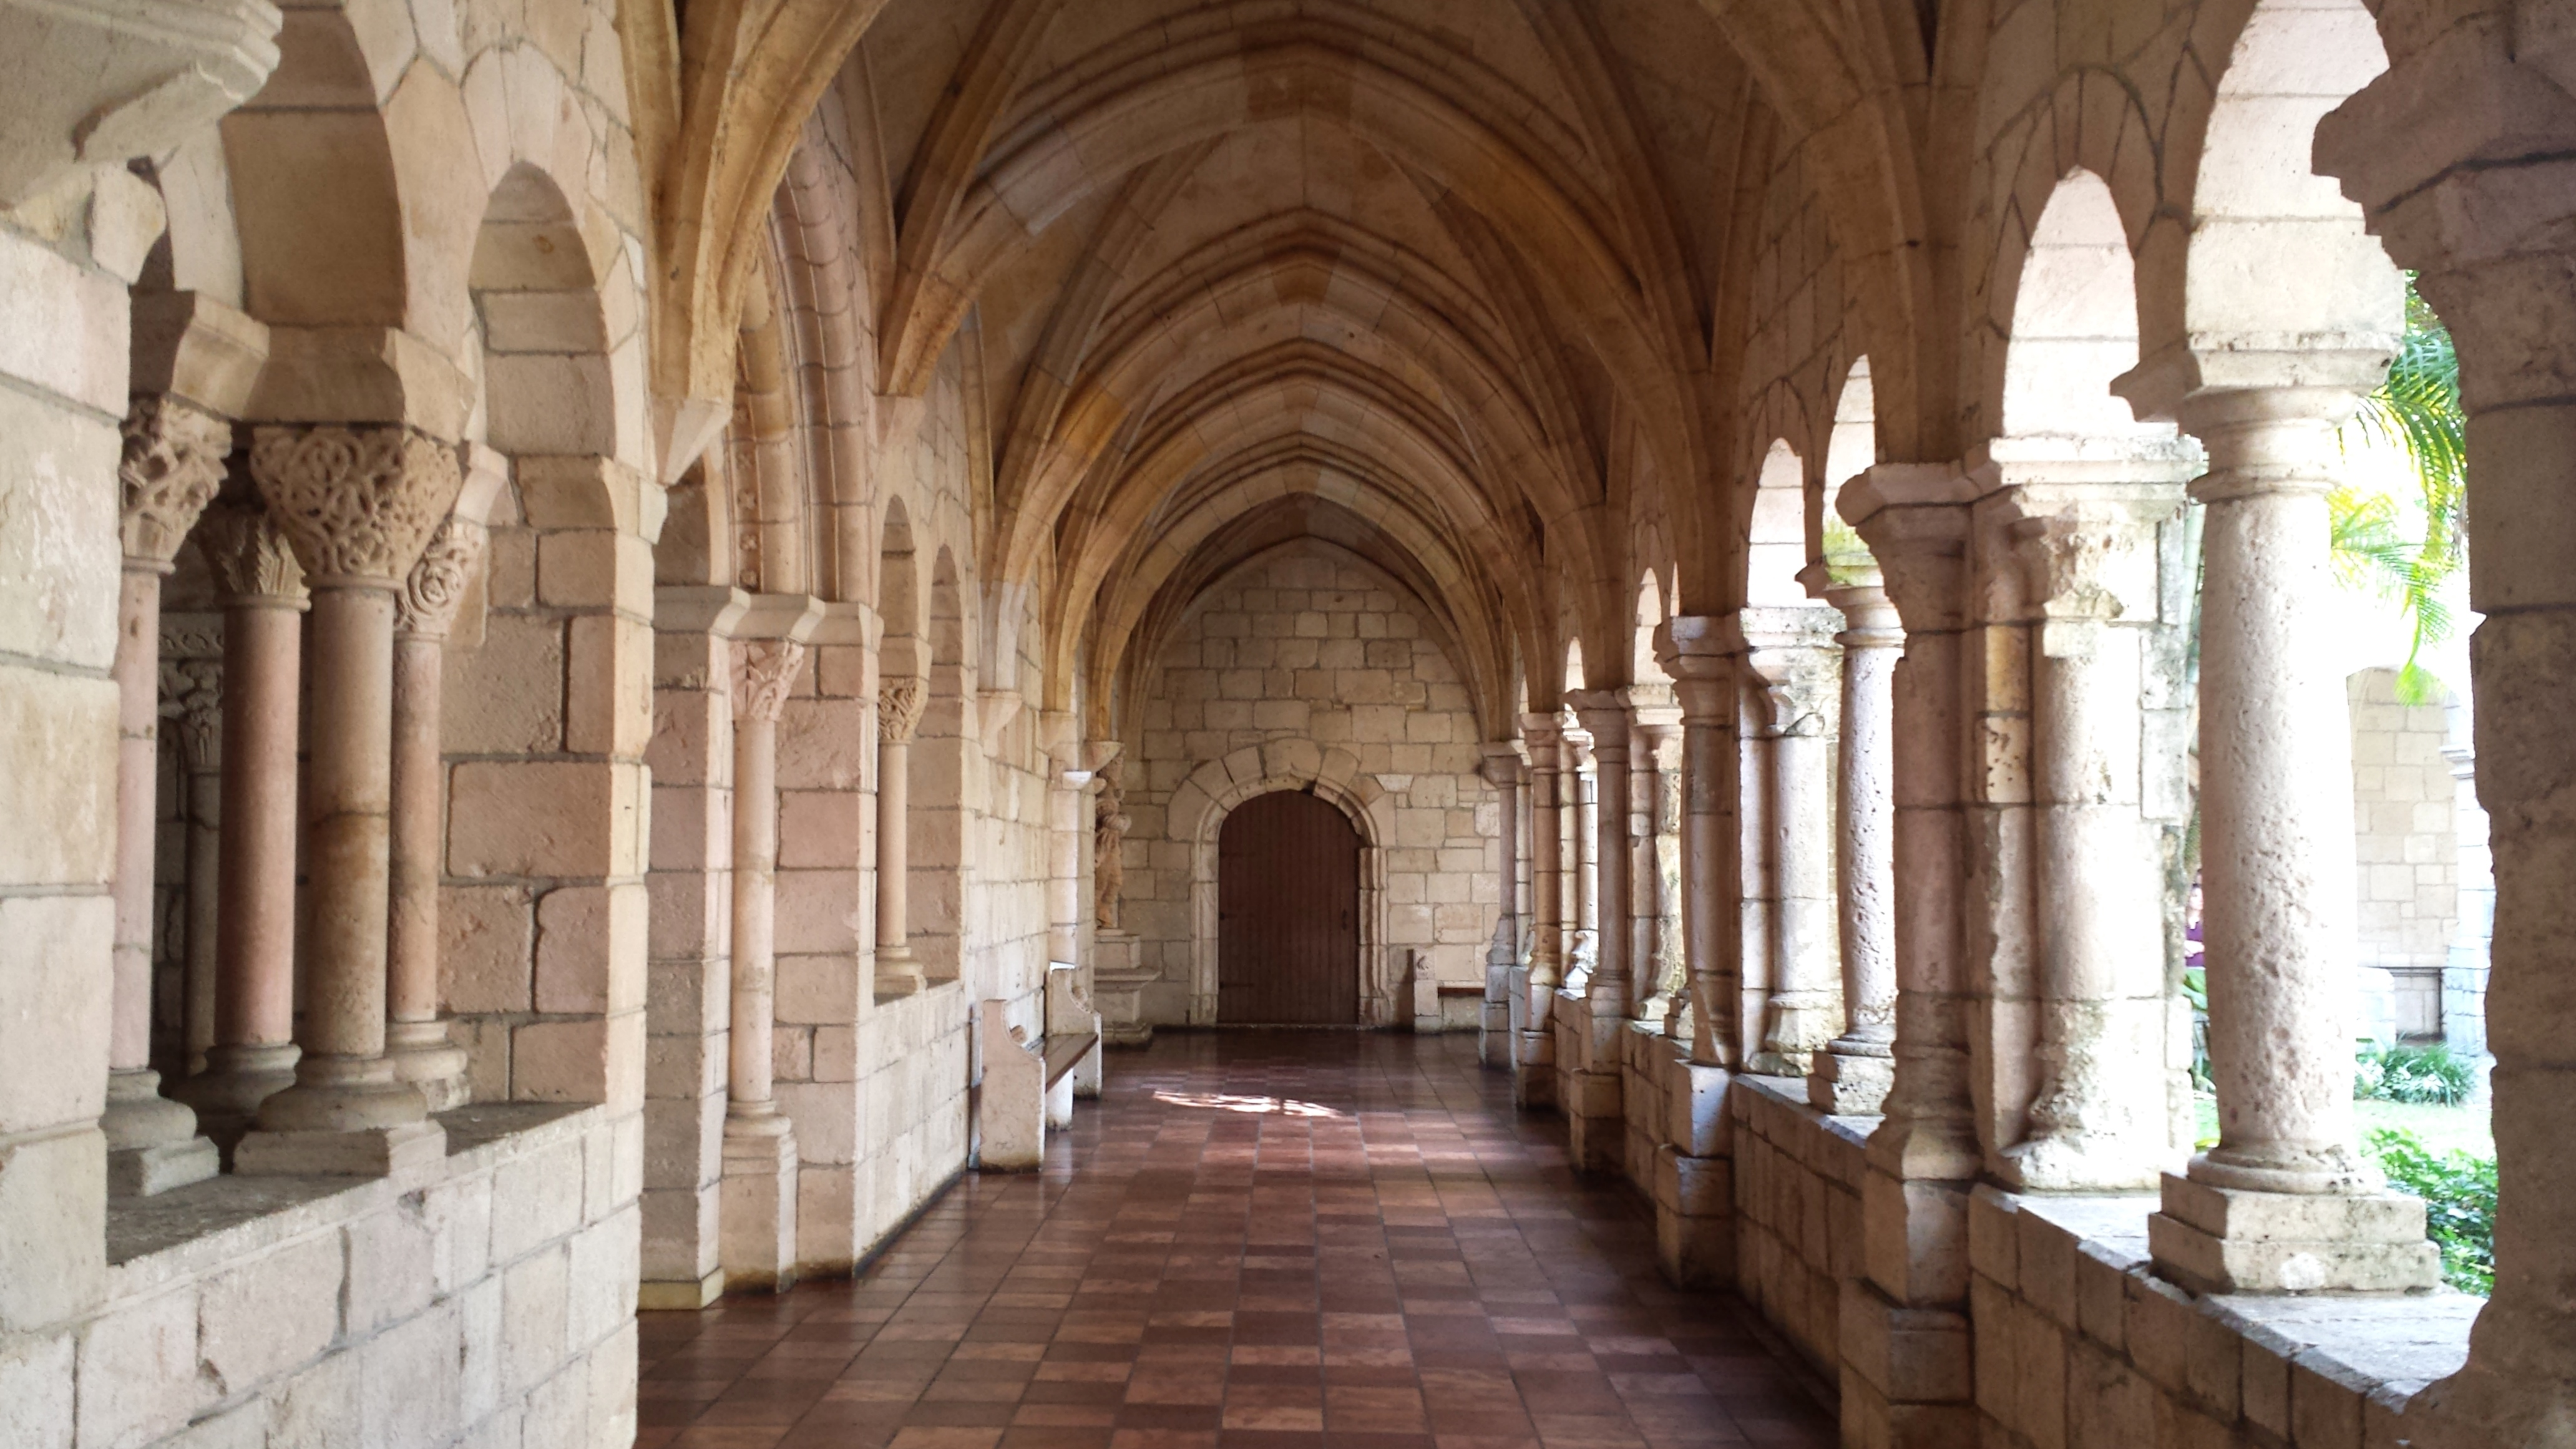 soliloquy of the spanish cloister View notes - soliloquy of a spanish cloister from engl 10001 at university of melbourne soliloquy of the spanish cloister gr­r­r­­there go, my heart's abhorrence.